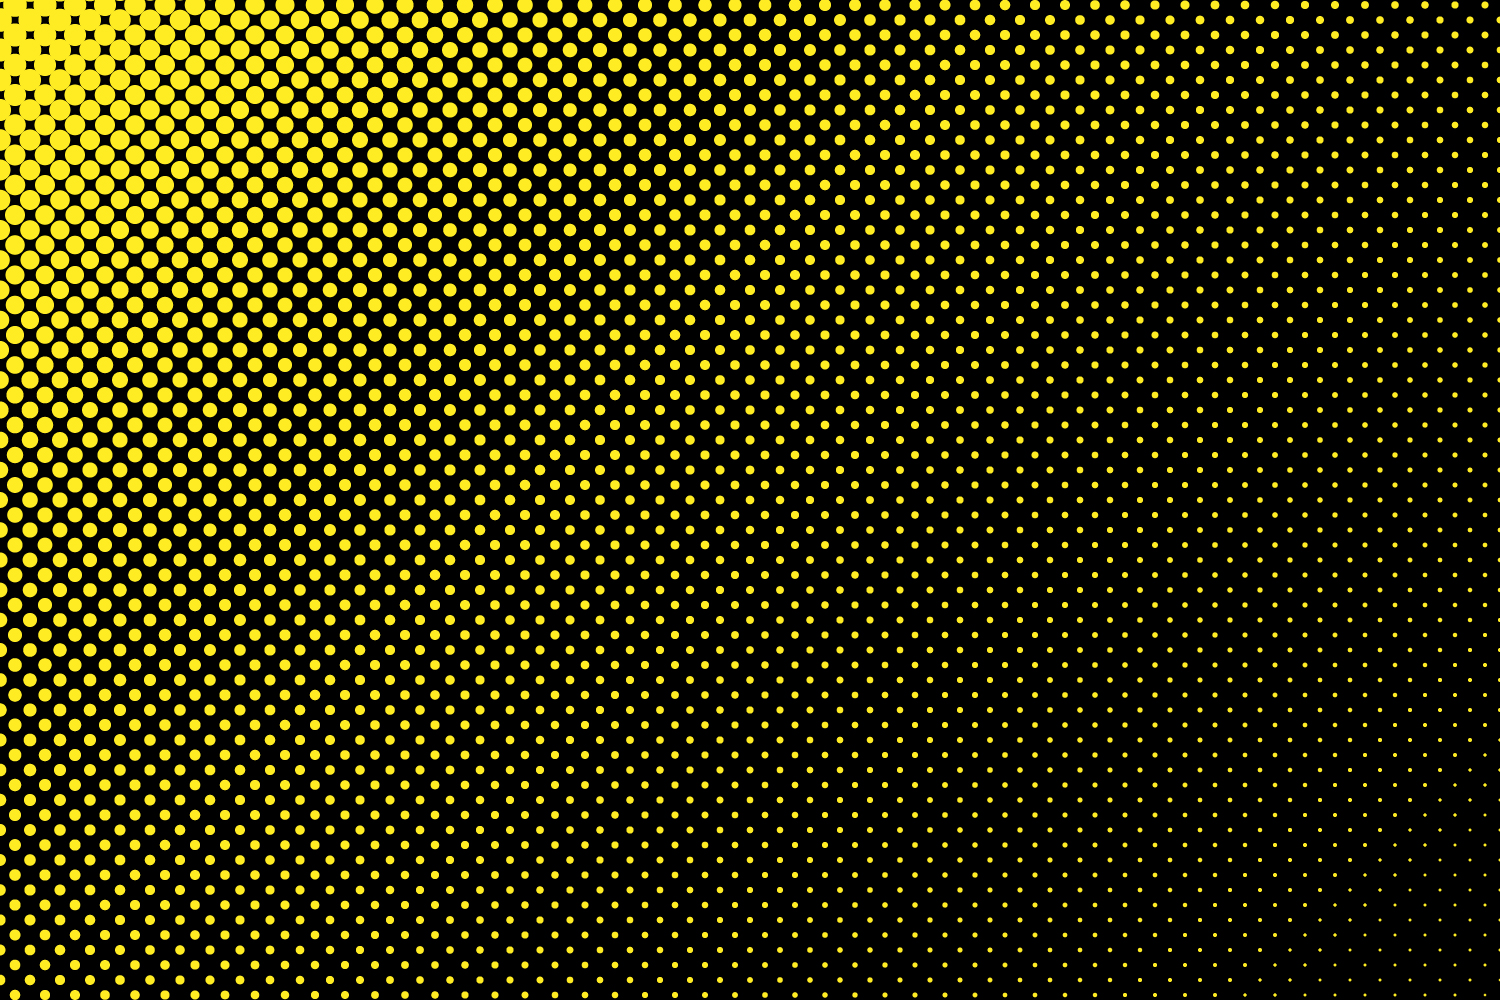 30 Halftone Circle Backgrounds (AI, EPS, JPG 5000x5000) example image 2